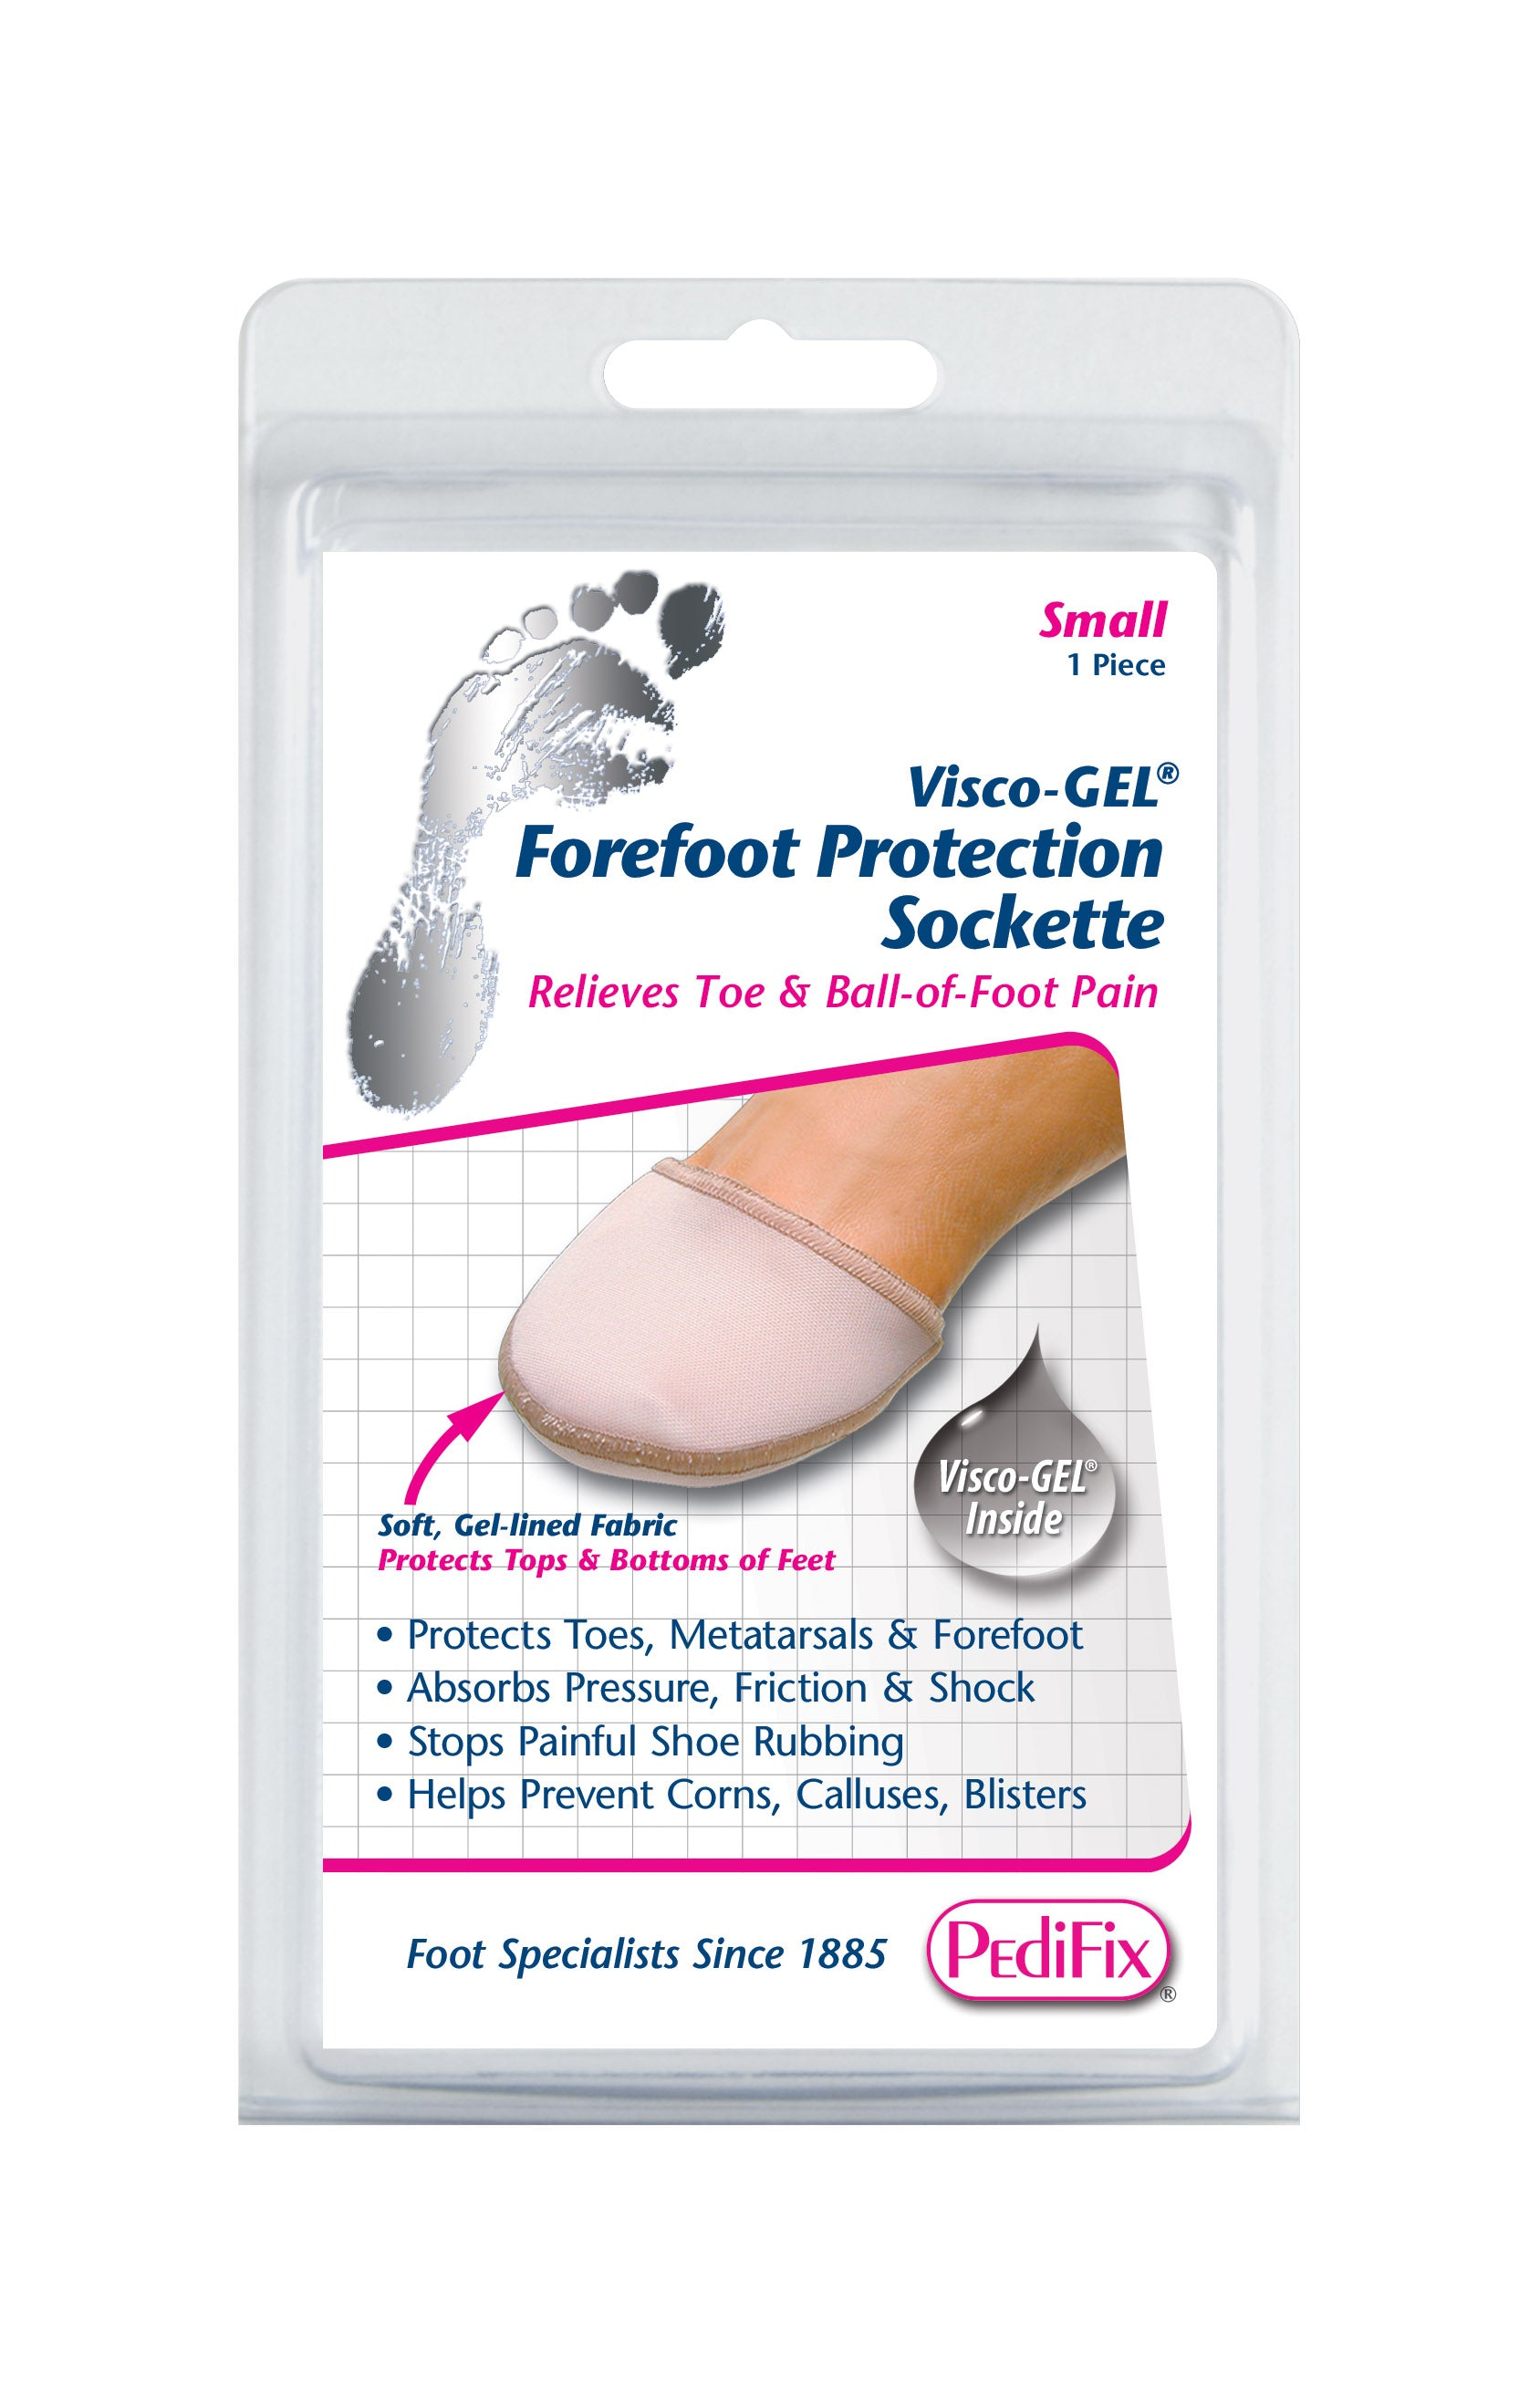 PEDIFIX FOREFOOT PROTECTION SOCKETTE LARGE